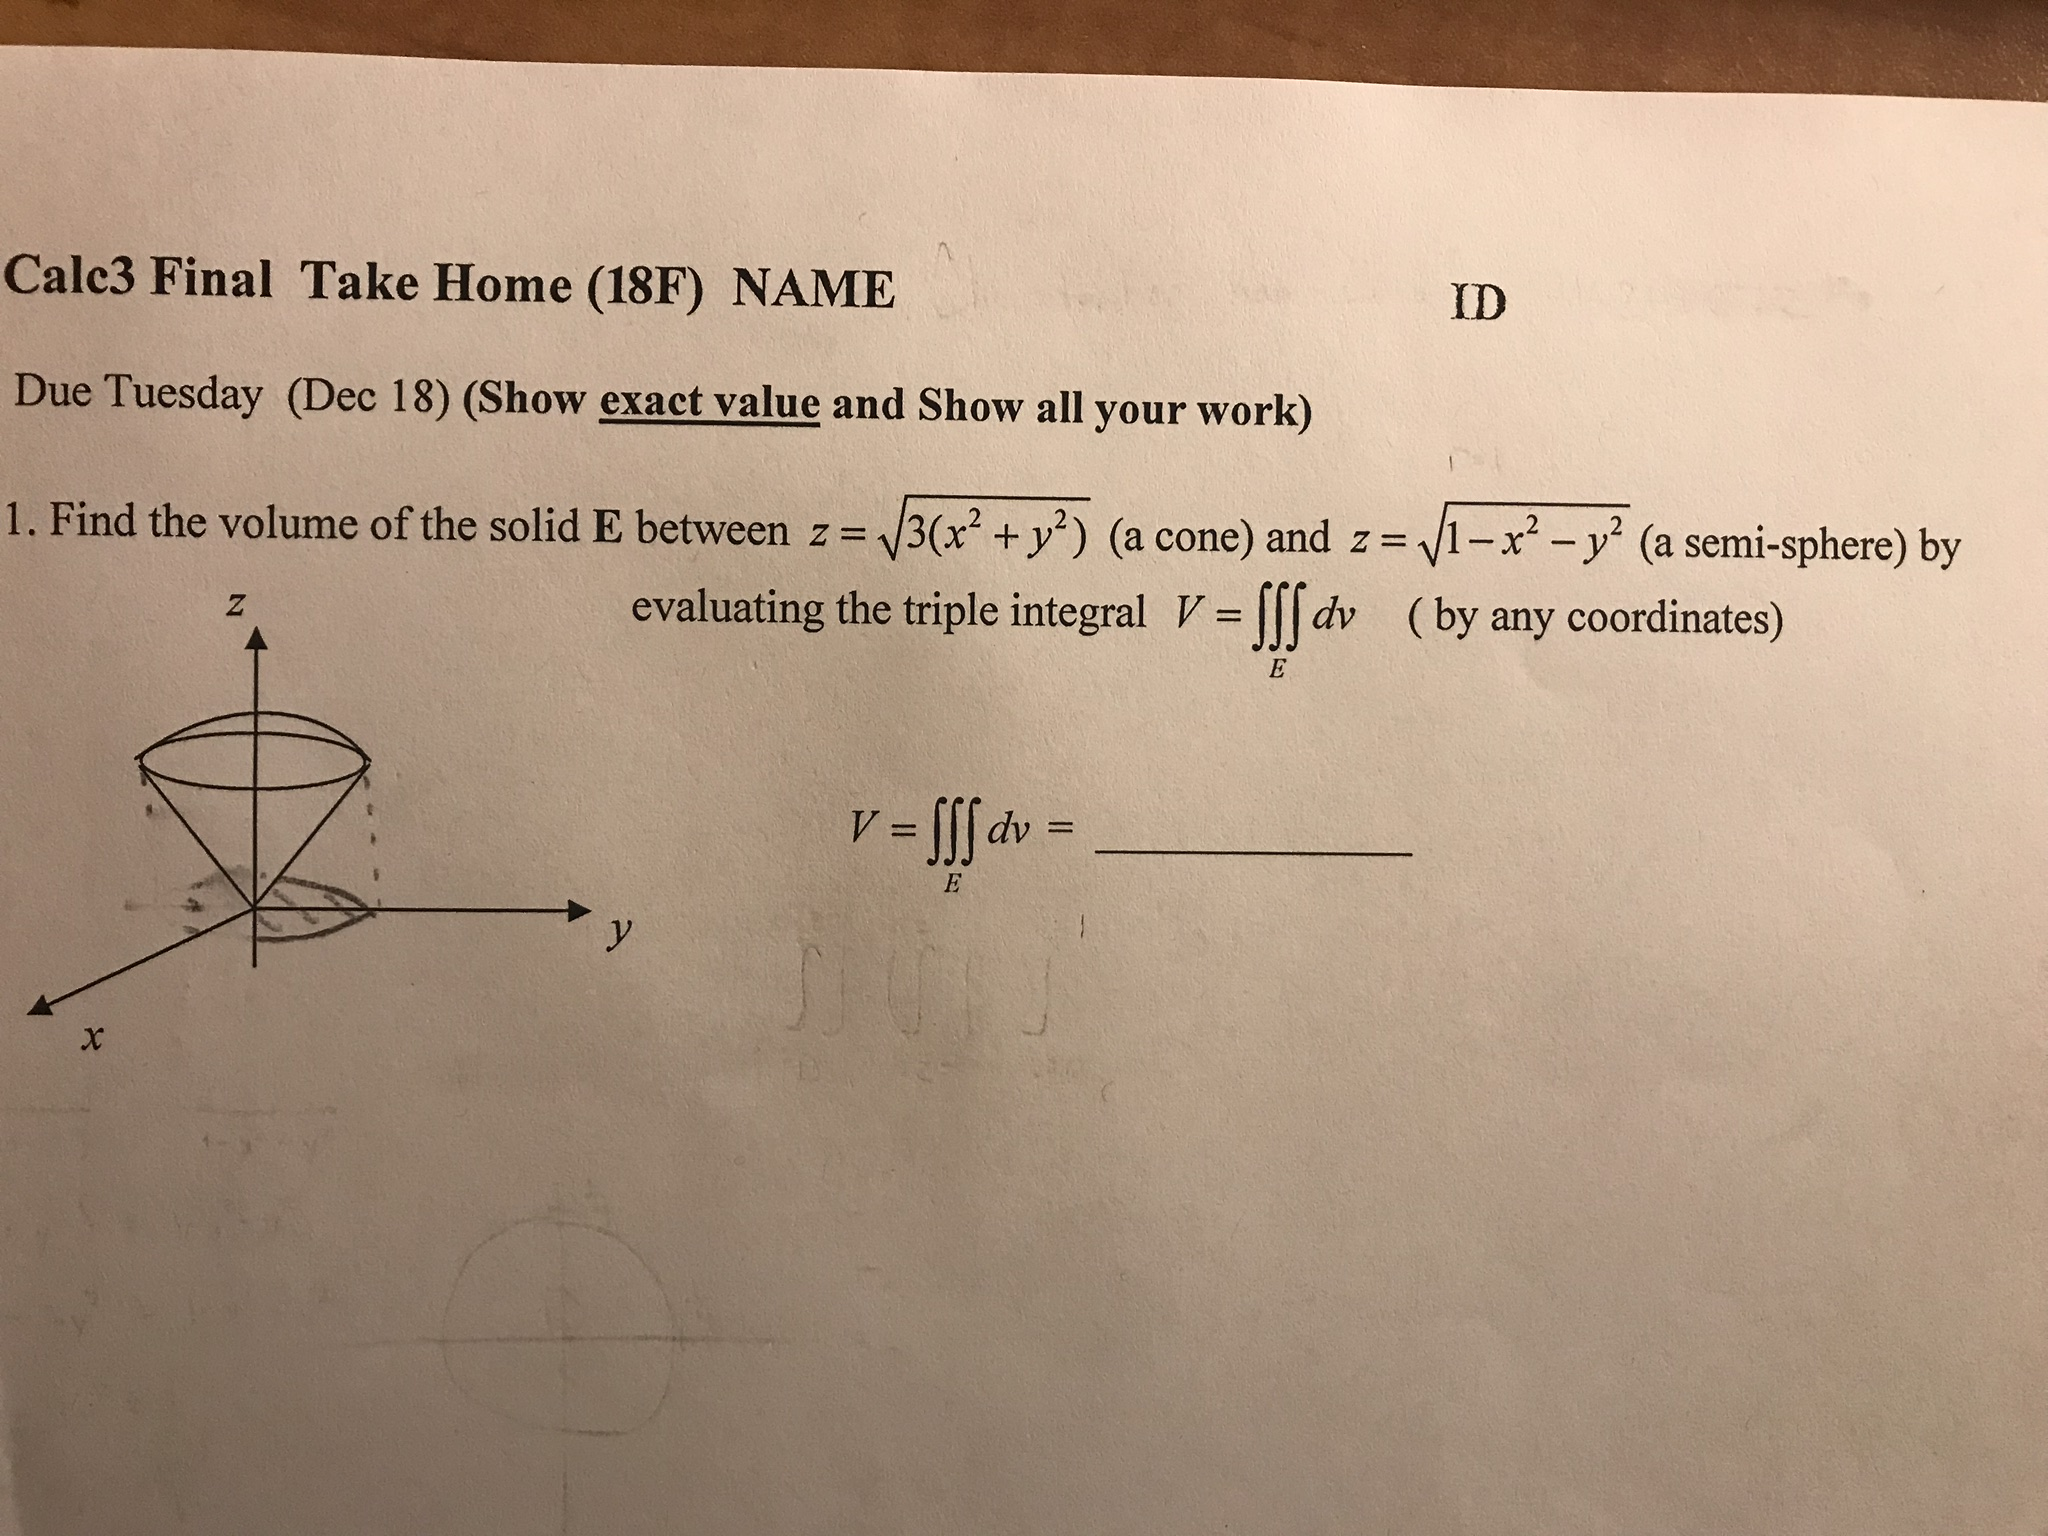 Cale3 Final Take Home (18F) NAME Due Tuesday (Dec 18) (Show exact value and Show all your work) 1 . Find the volume of the solid E between z 3 x2 + уг) (a cone) and z-f ID x2-y2 (a semi-sphere) by (by any coordinates) evaluating the triple integral Vlldv